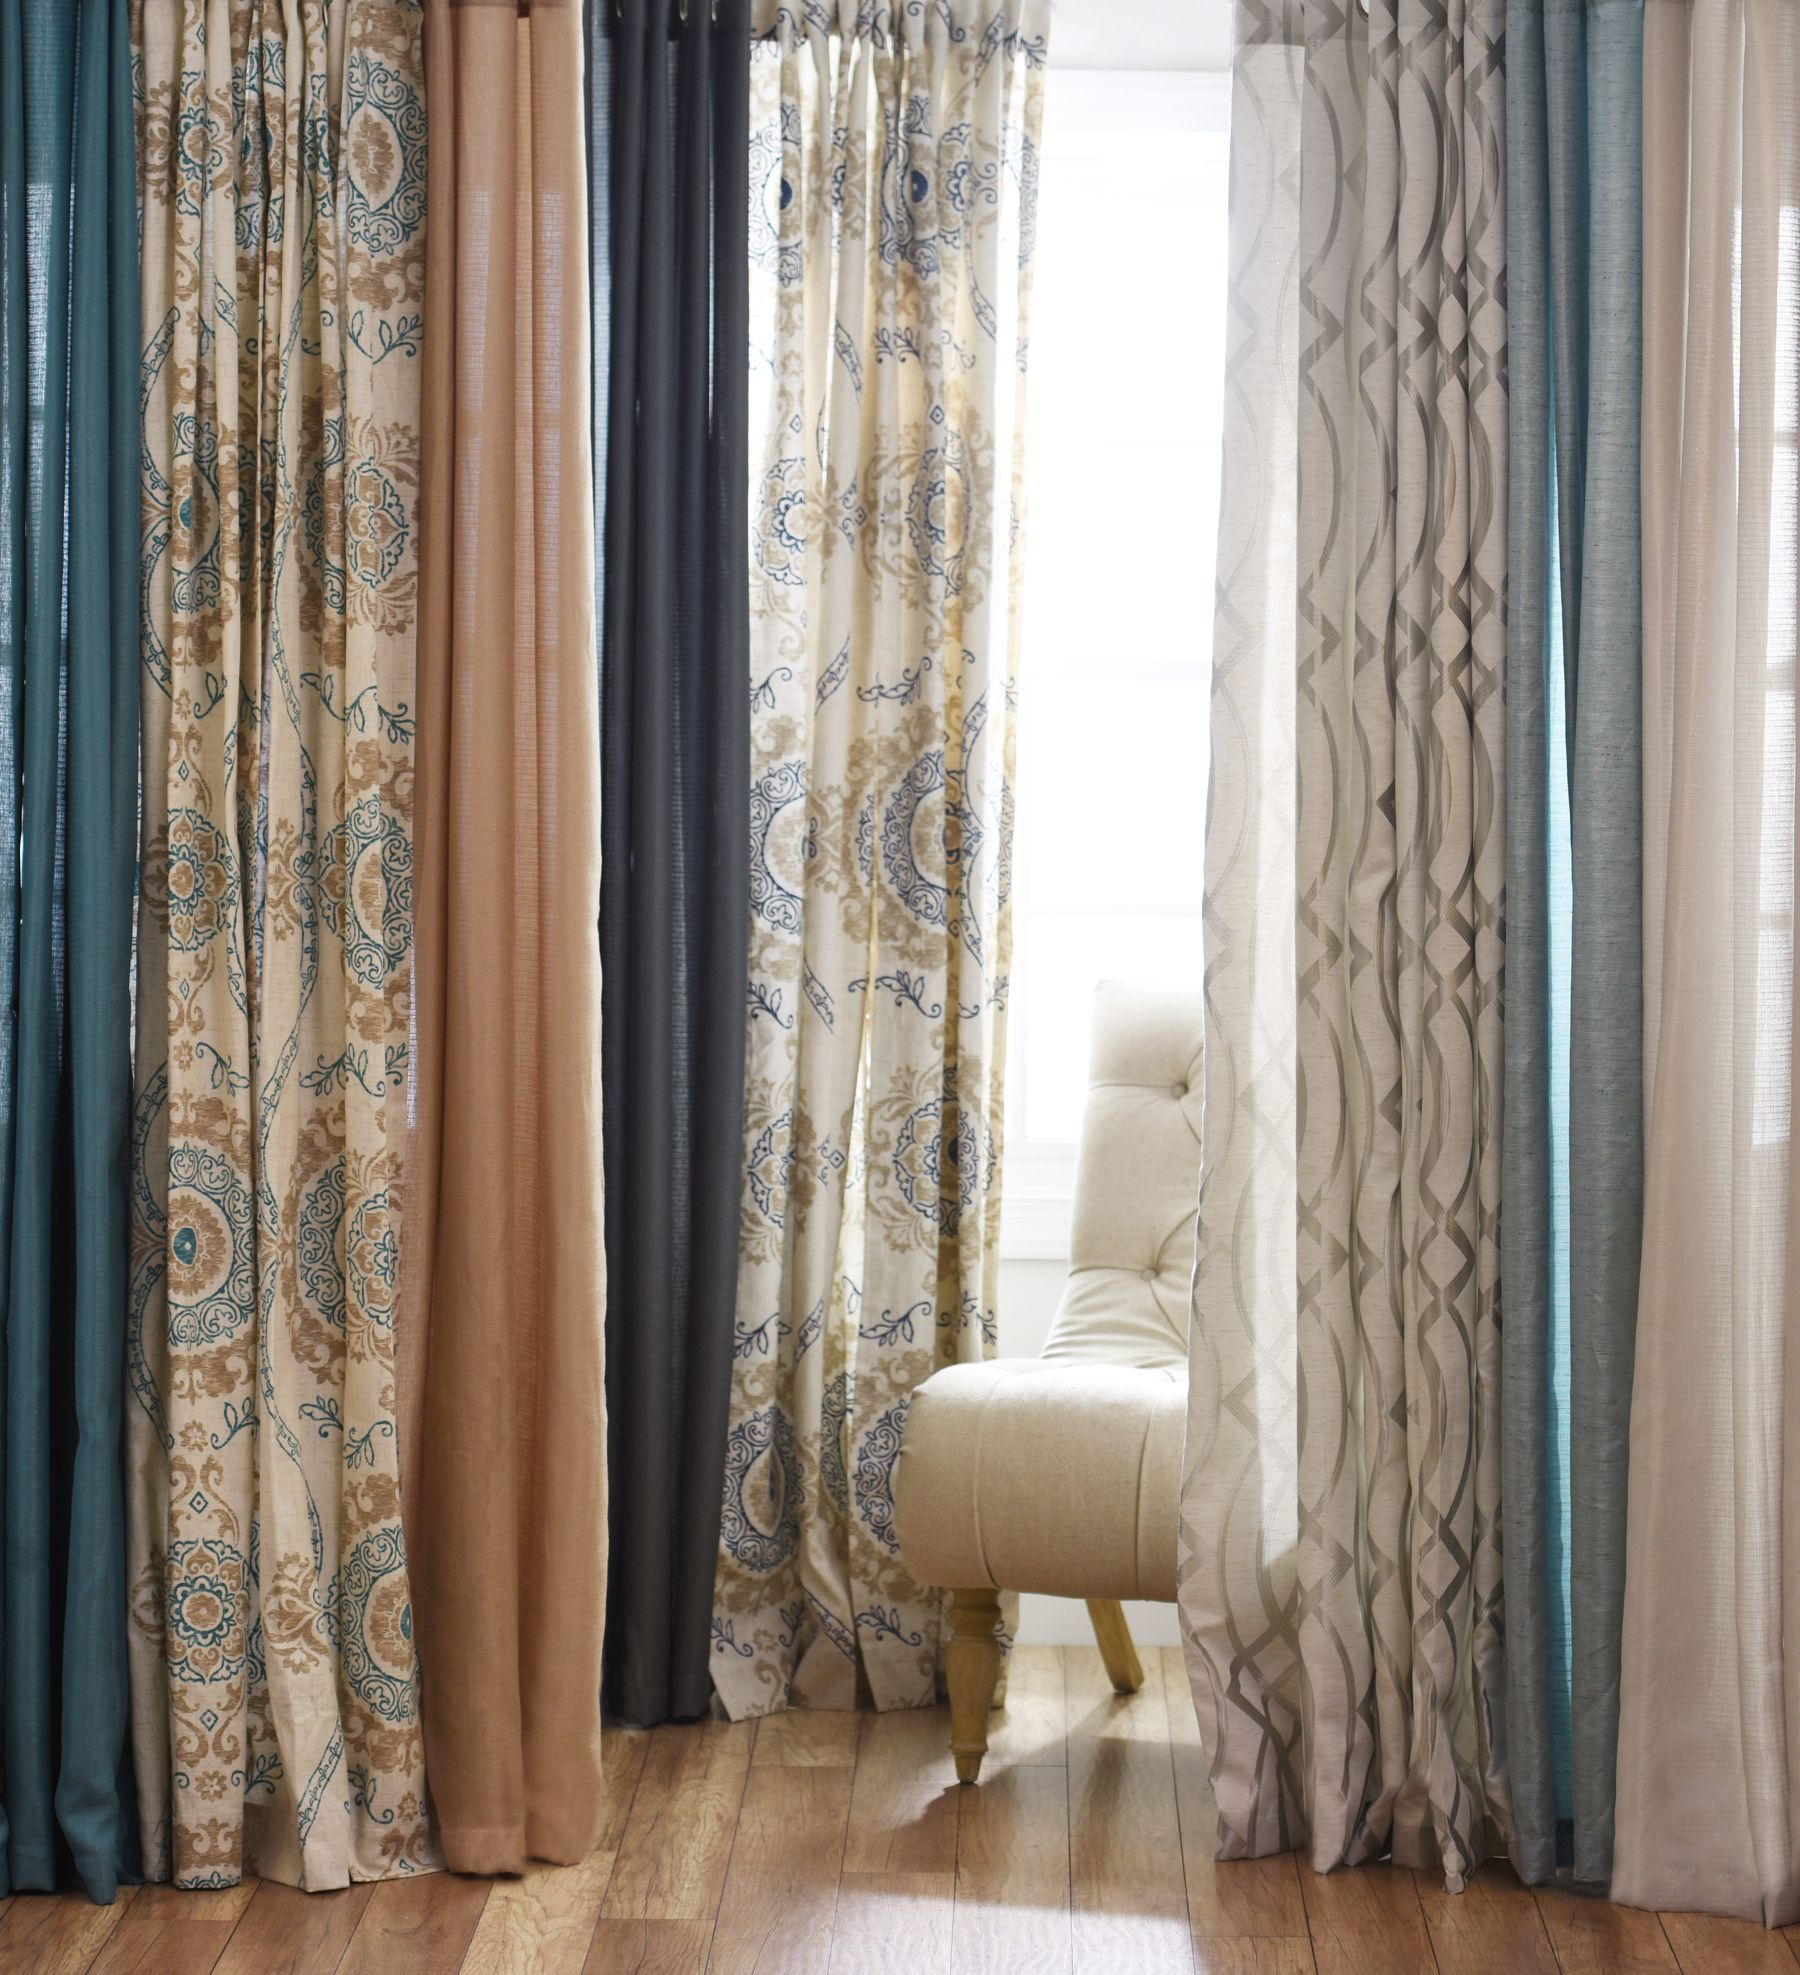 Bright And Bold Guest Bedroom: Curtains Are A Necessary Part Of Any Home! Keep The Sun